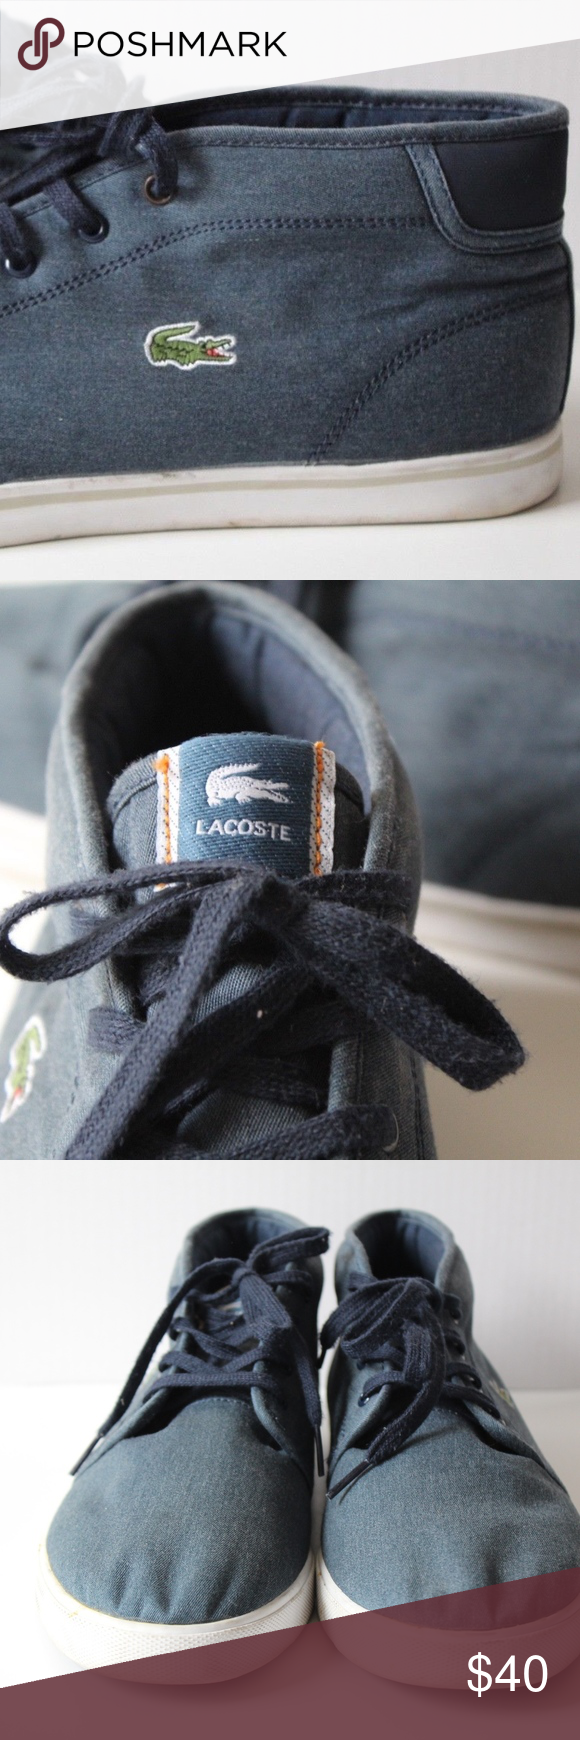 00f5acfcd6643 LACOSTE Sport Mens Ampthill Chukka Sneakers LACOSTE Sport Mens Ortholite  Ampthill Chukka Sneakers canvas light yellowing scuff please see pics.